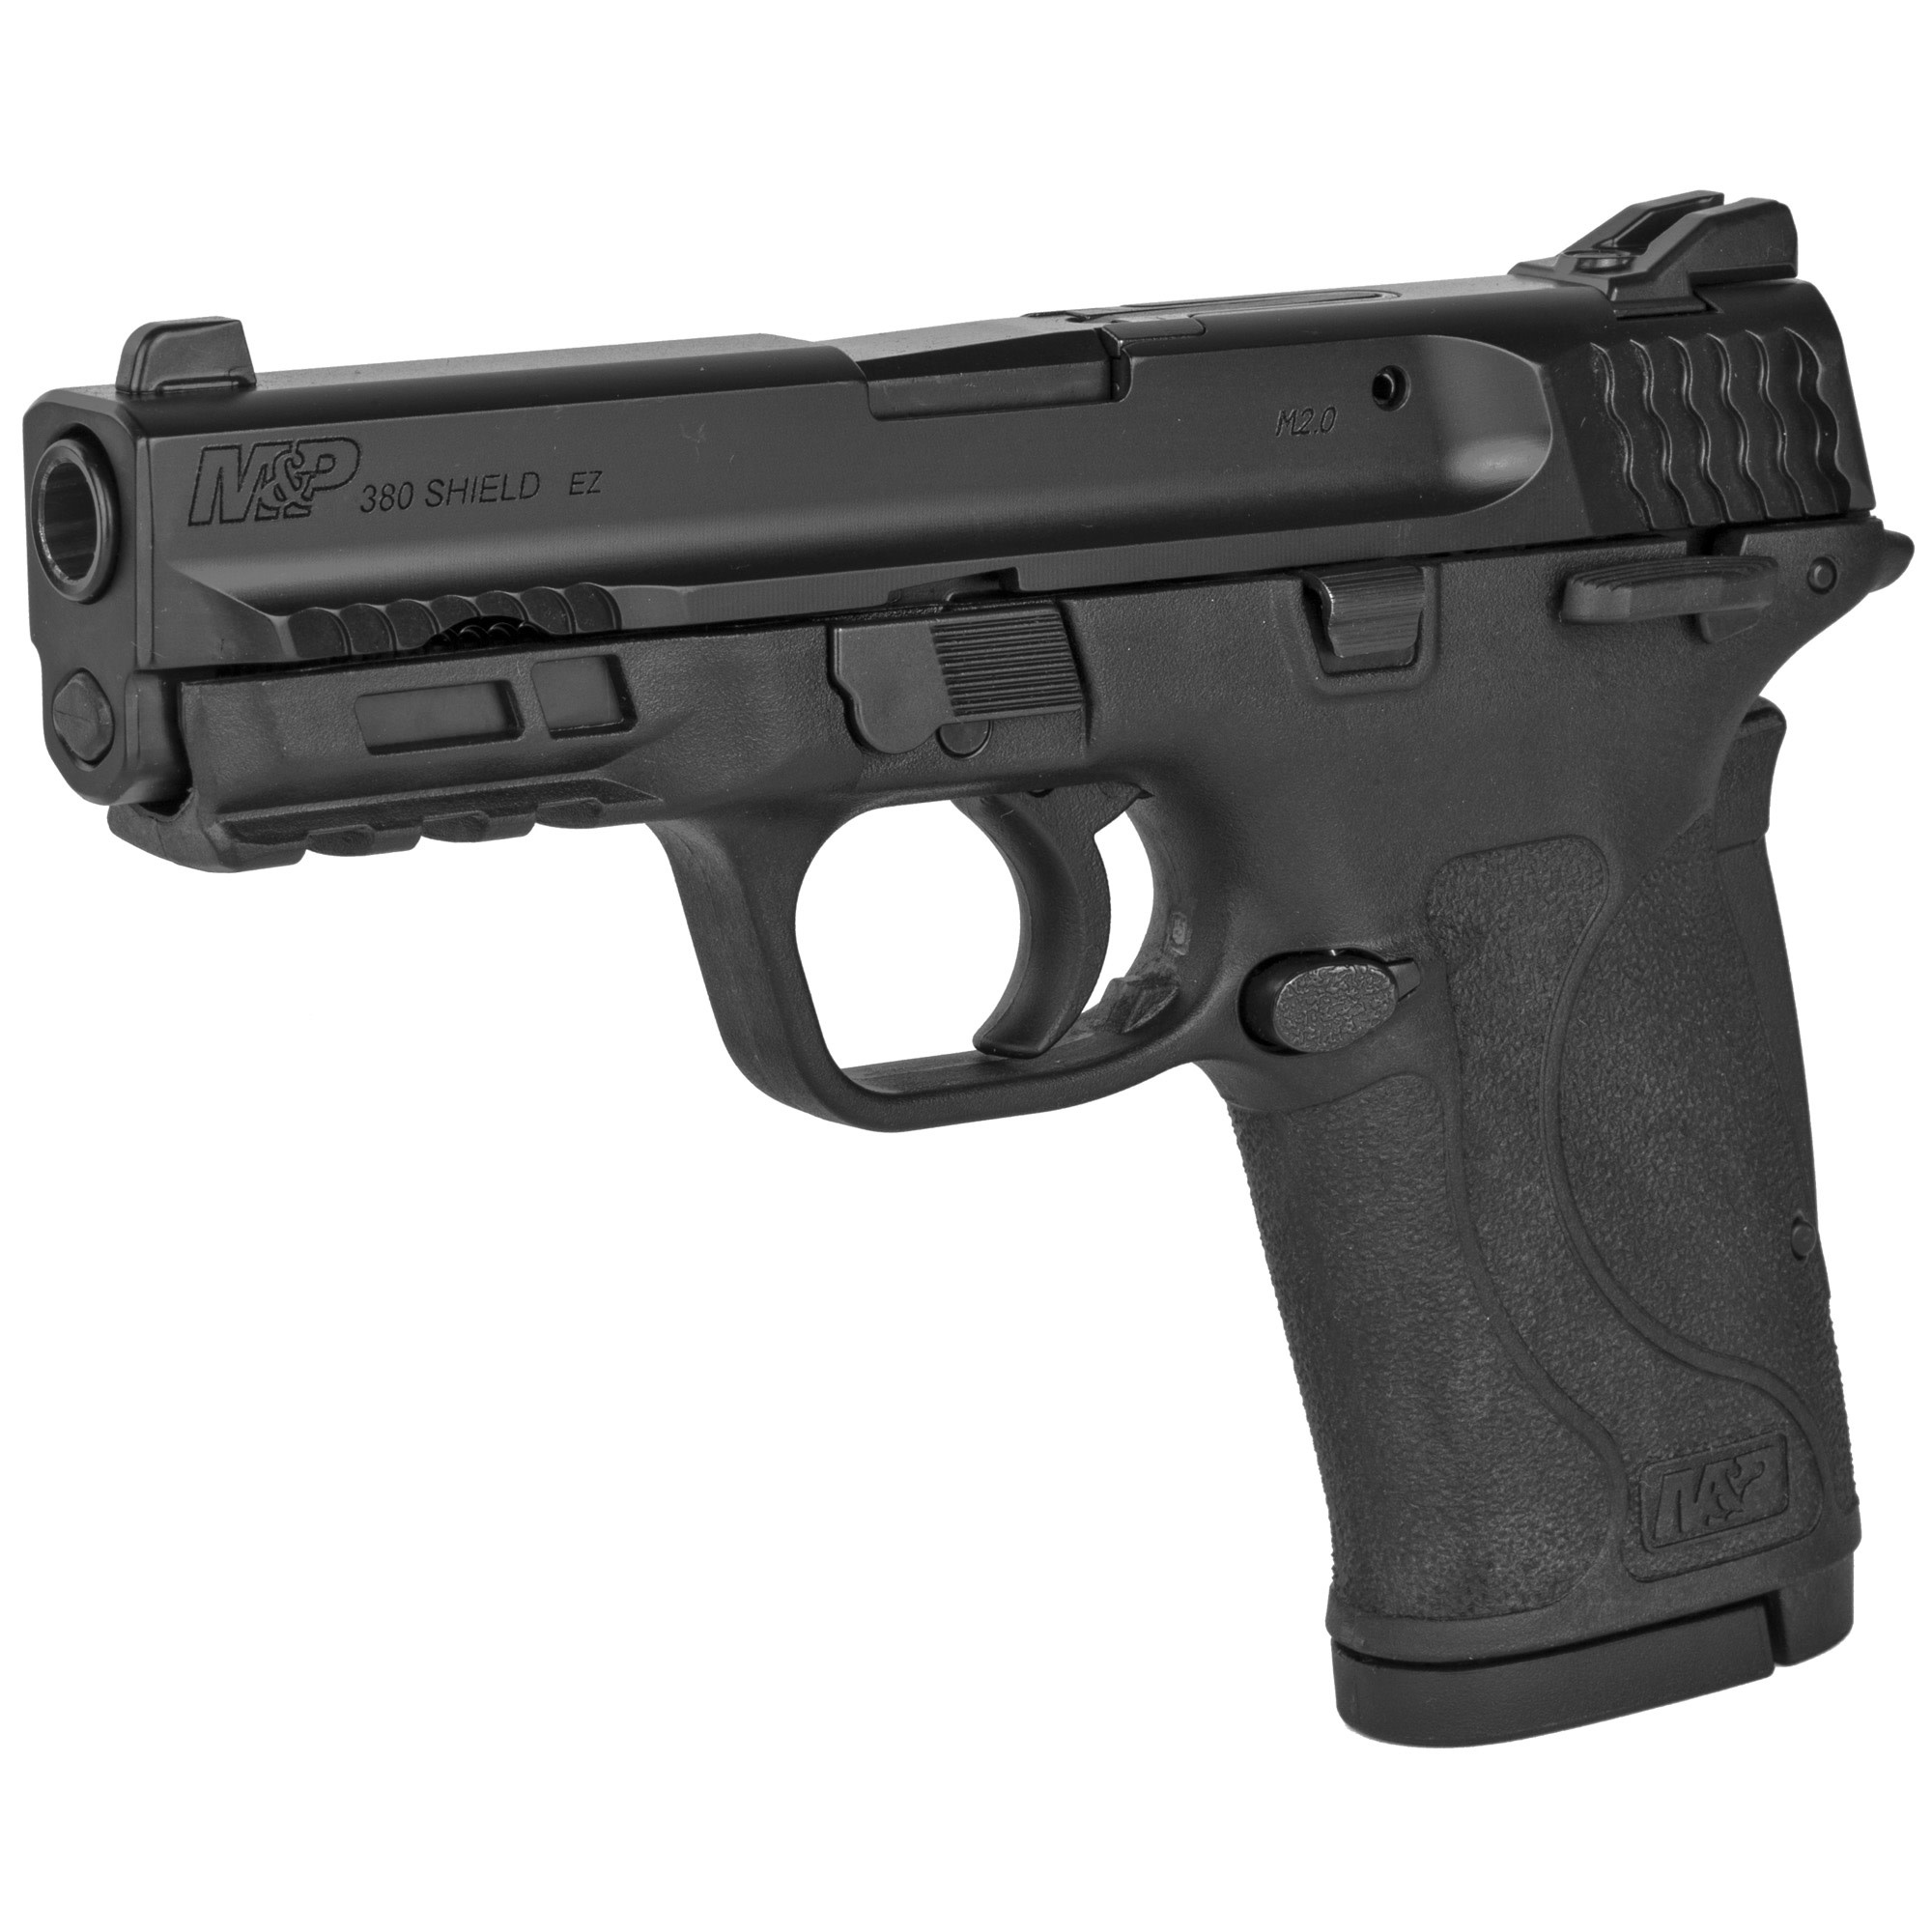 Smith & Wesson M&P EZ Shield with Thumb Safety, 380acp